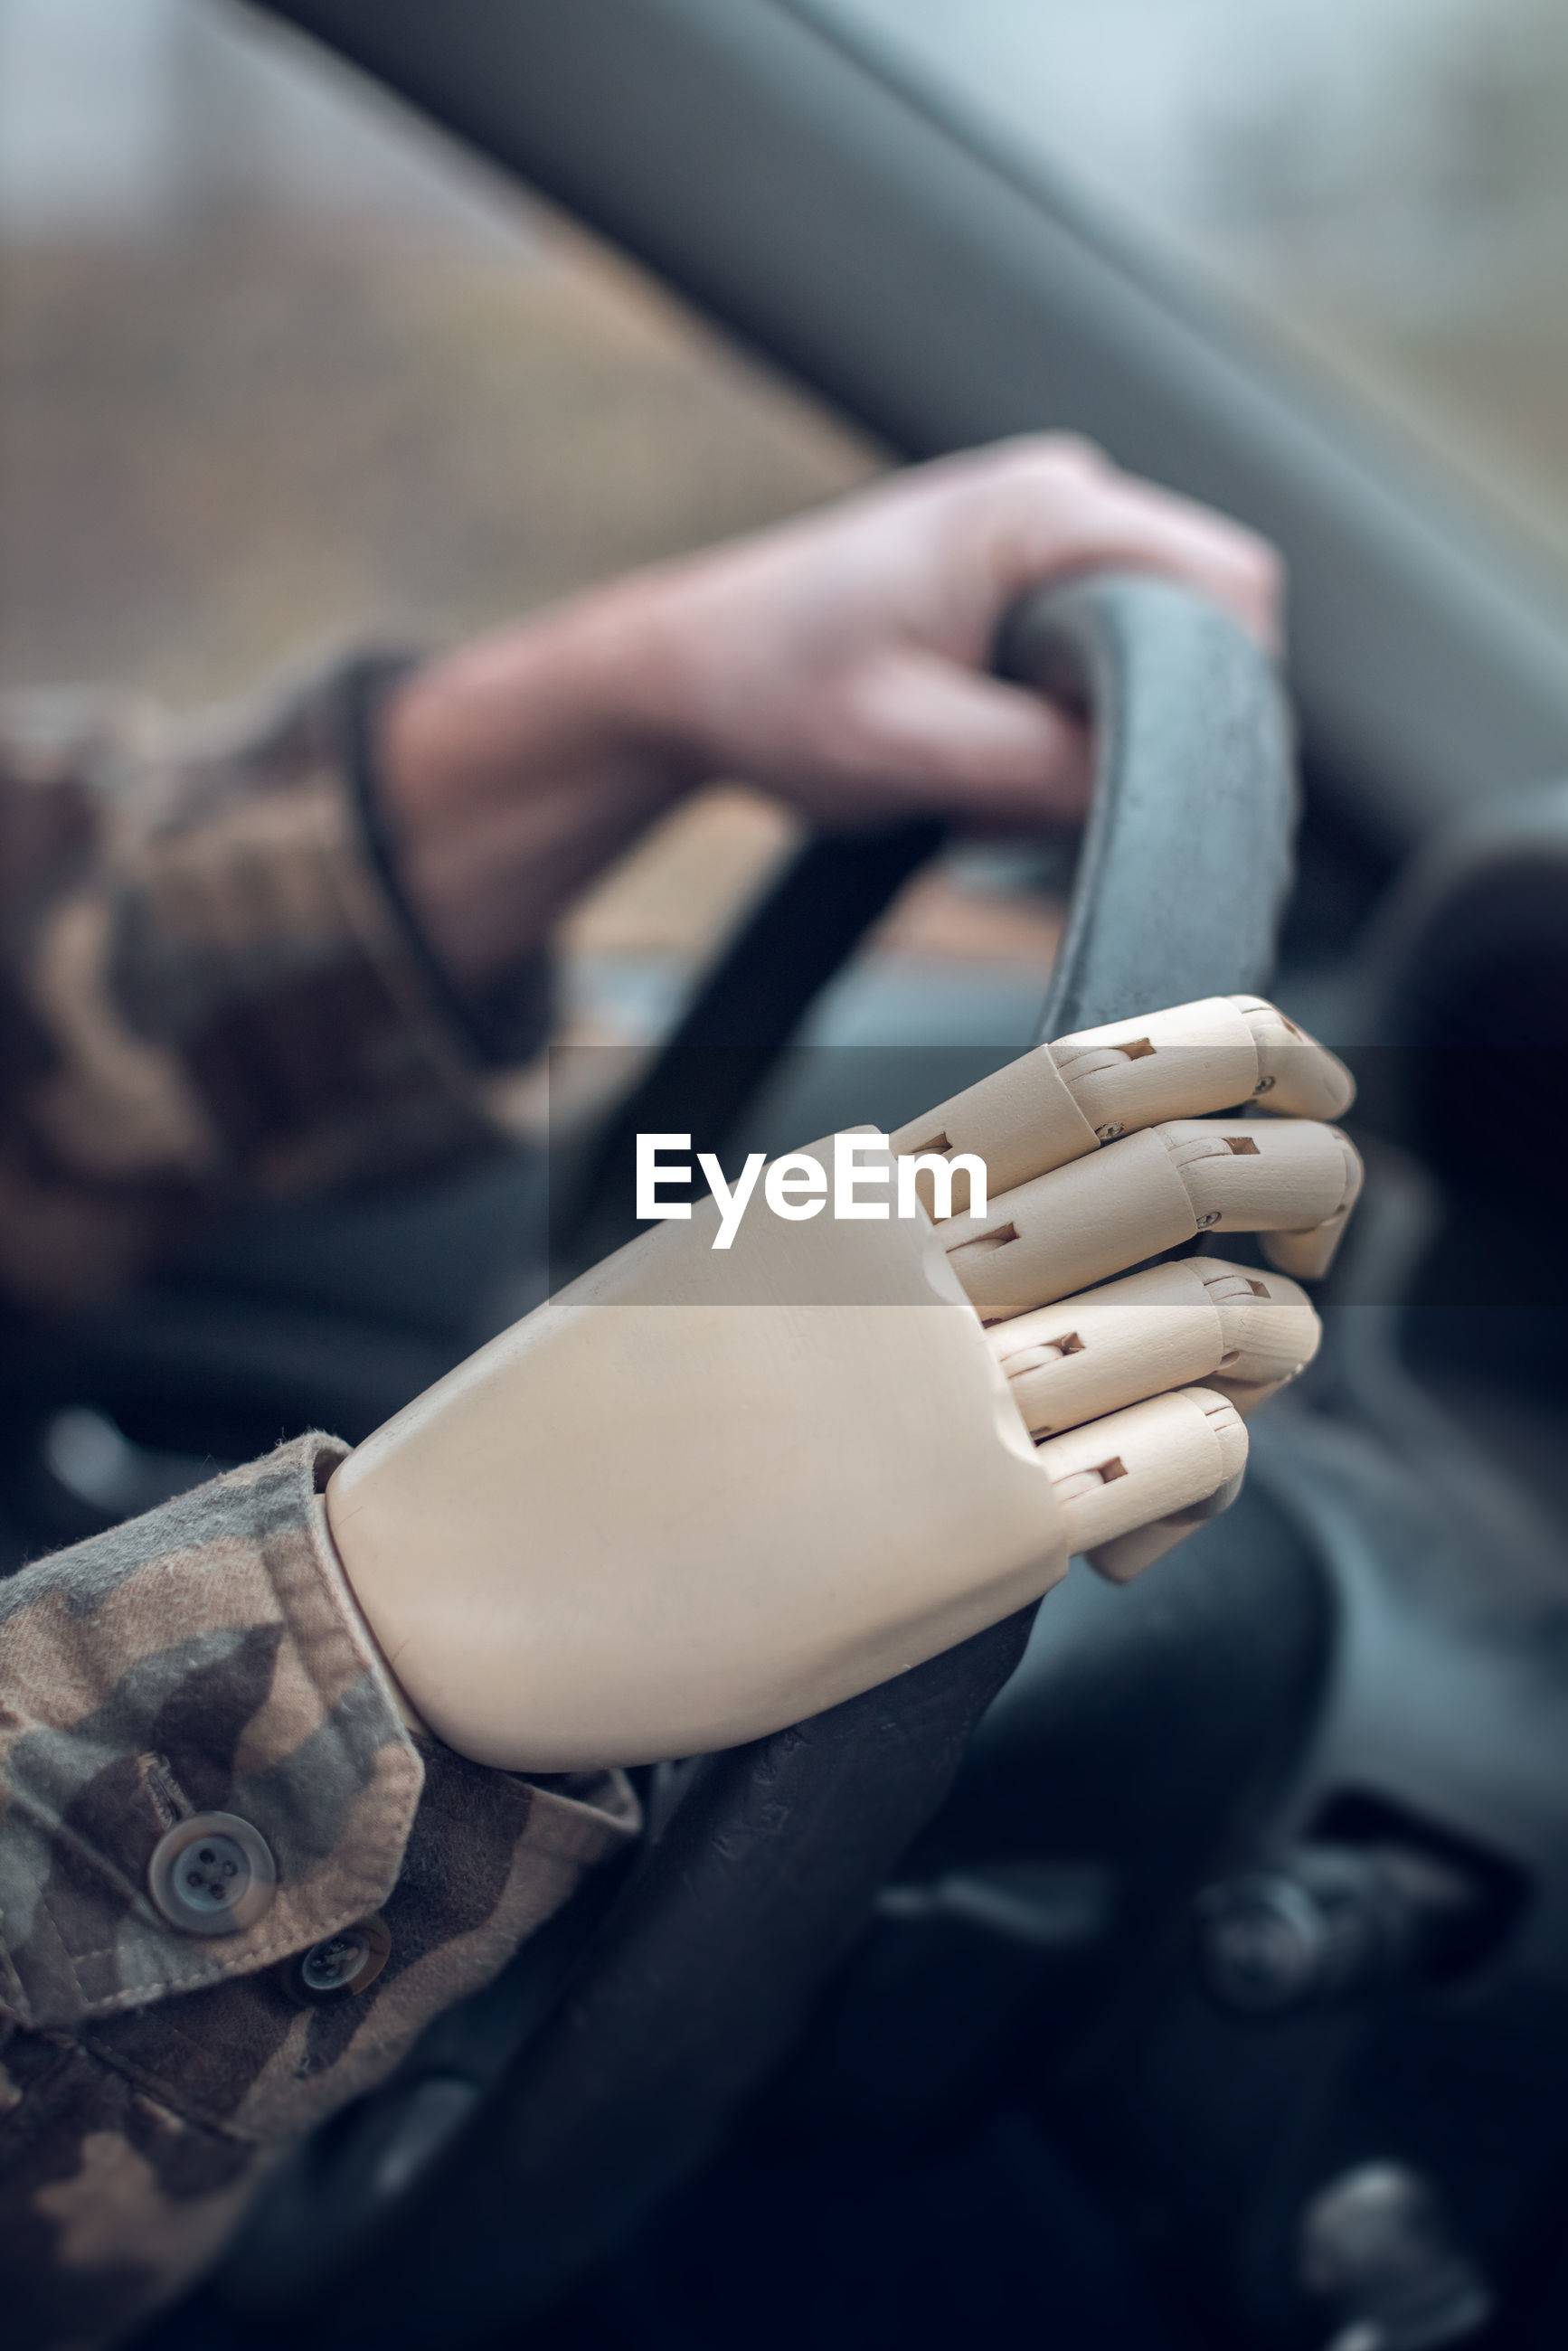 Soldier with artificial hand driving car